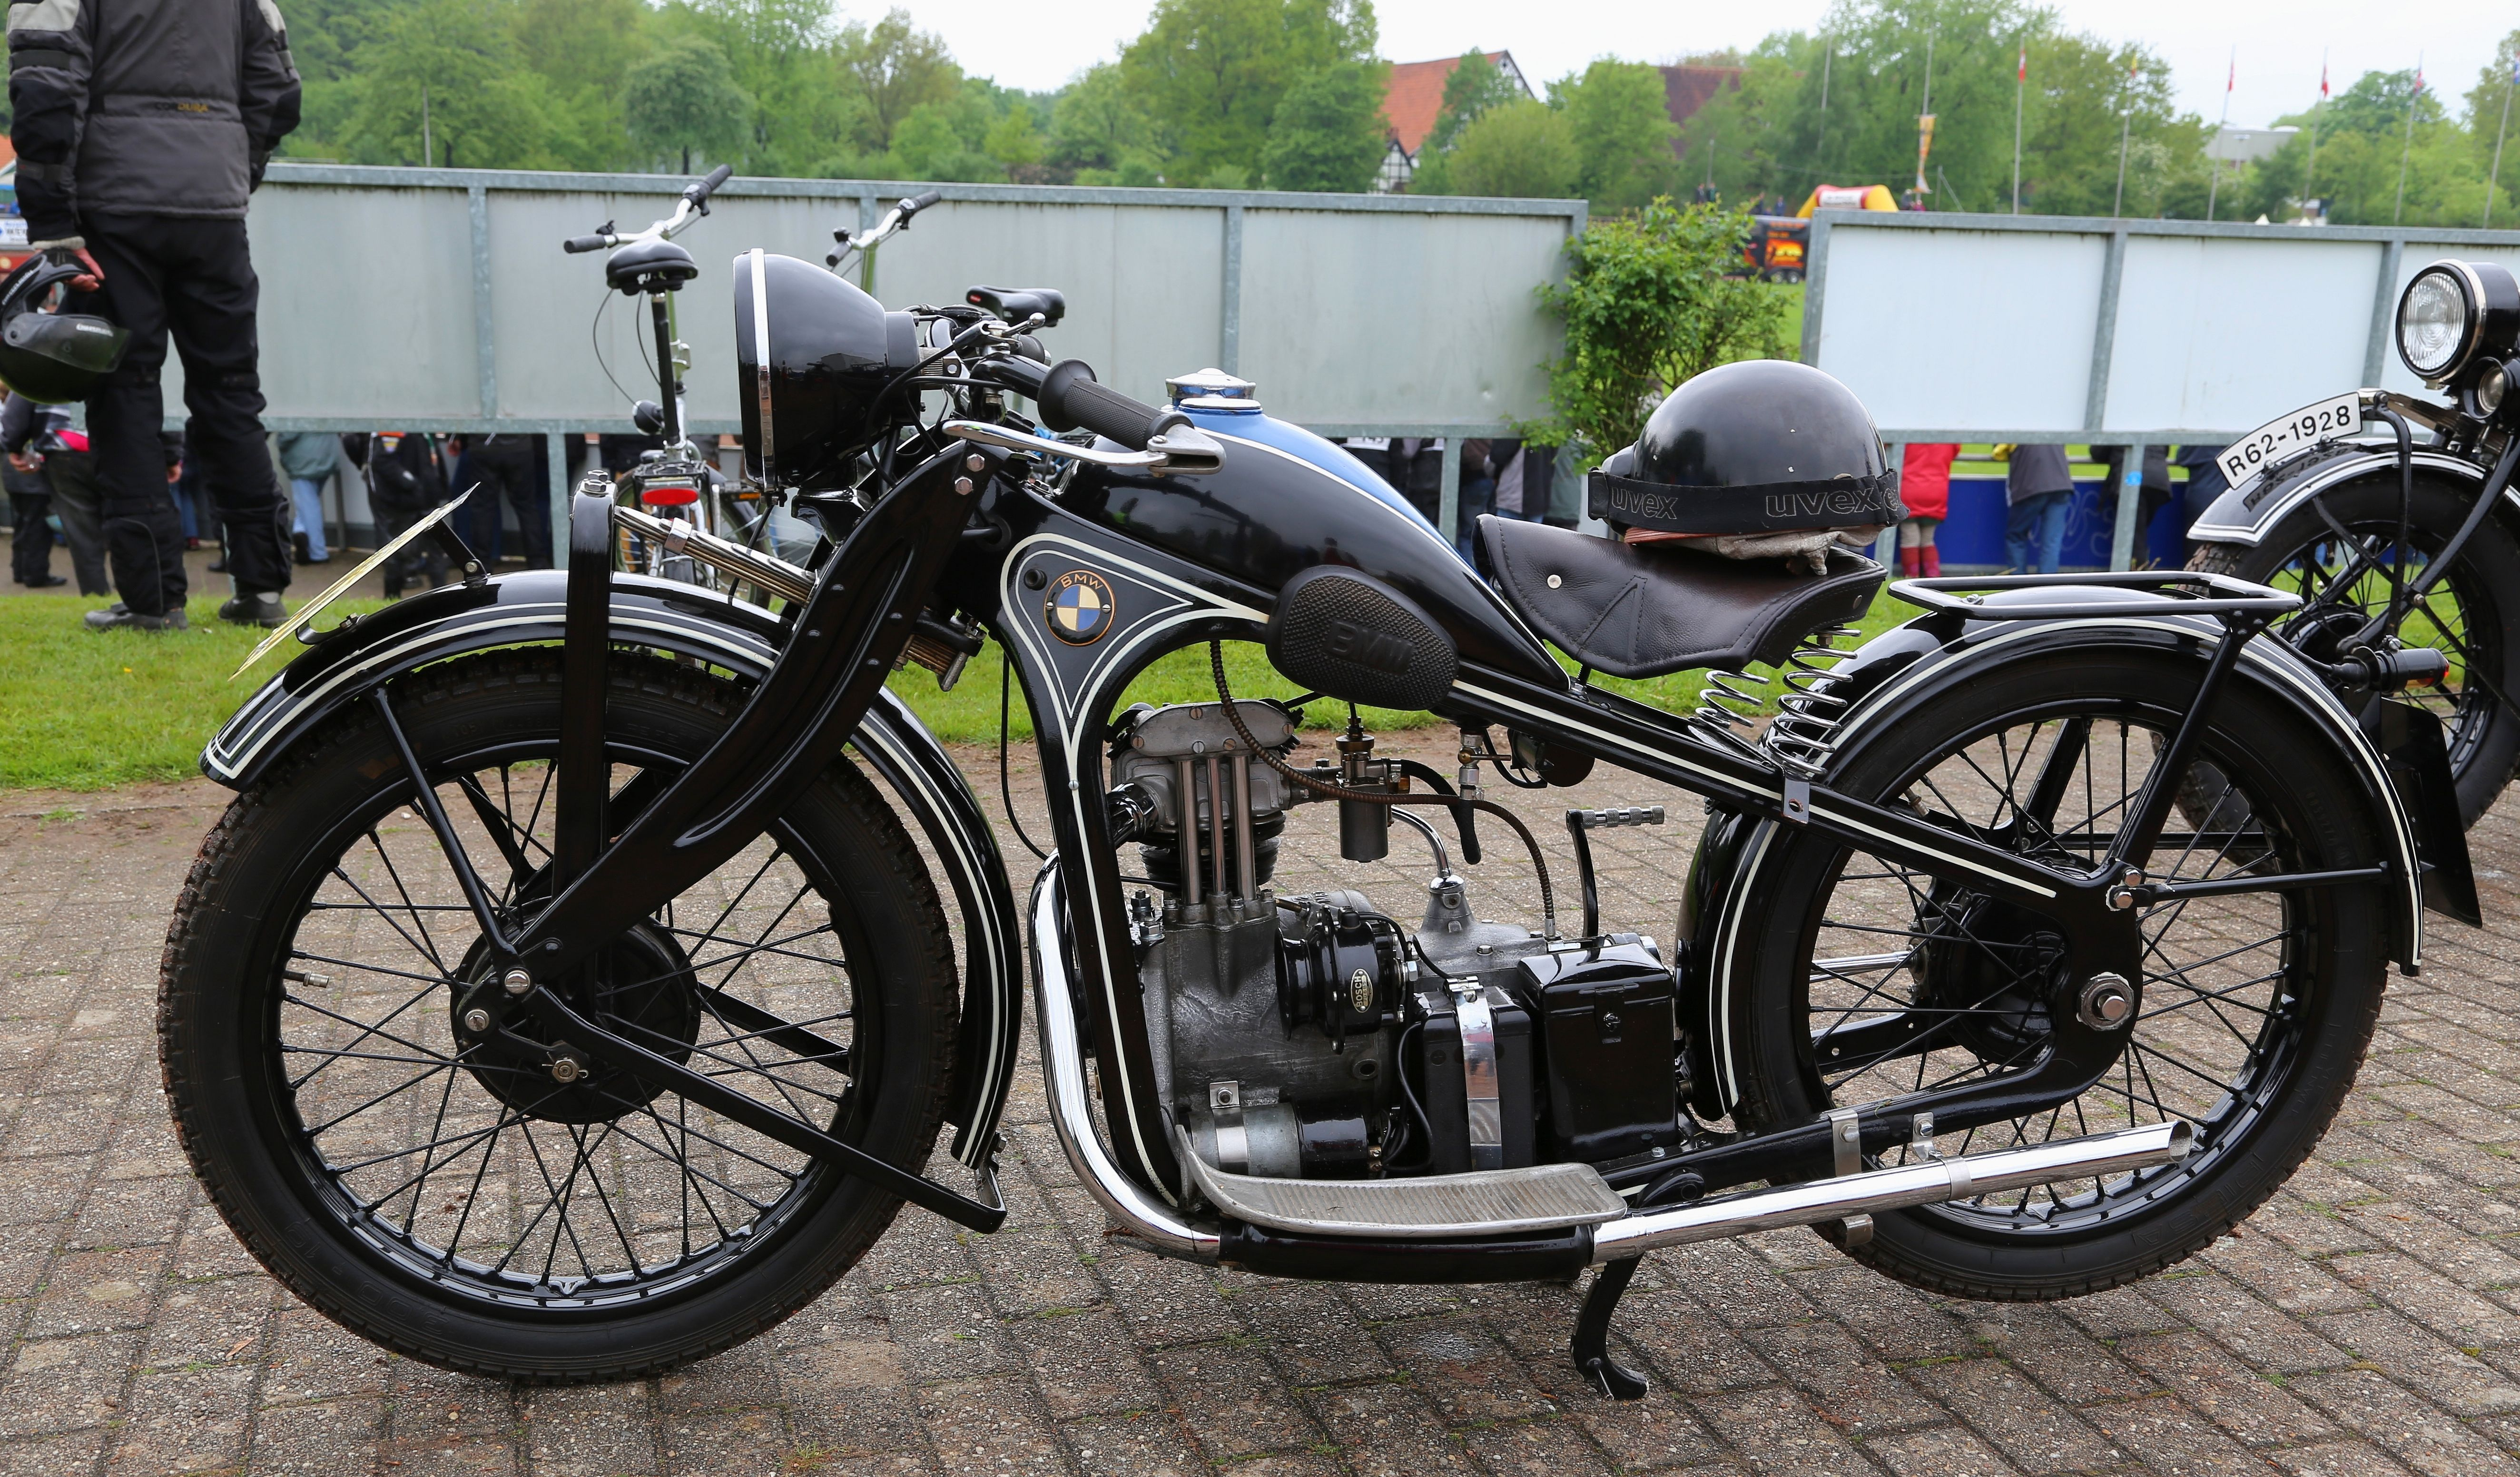 bmw r62 (1928) single cylinder. could be operated in germany